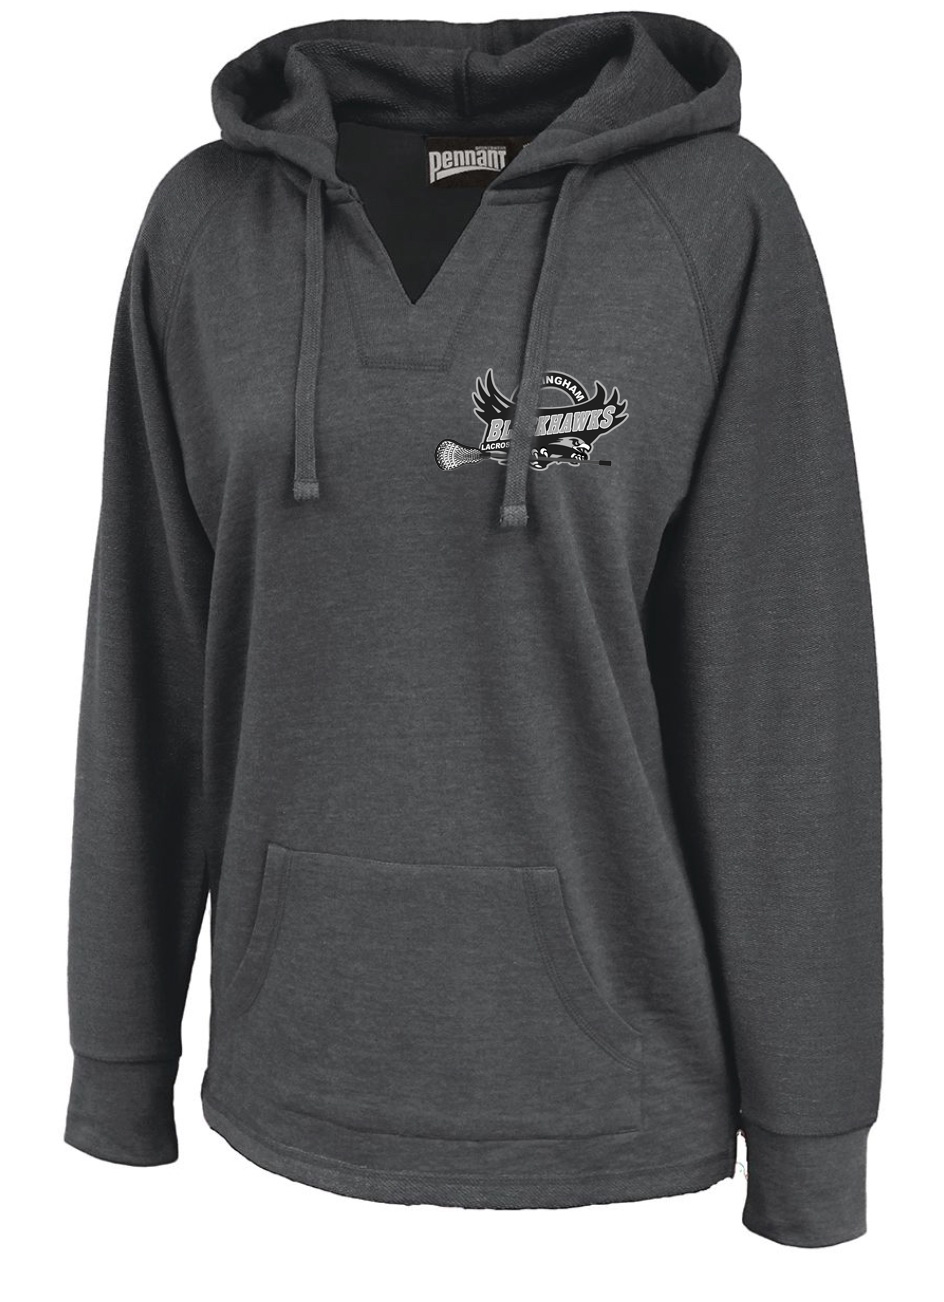 Bellingham Lacrosse Women's Volley Sweatshirt - From $35